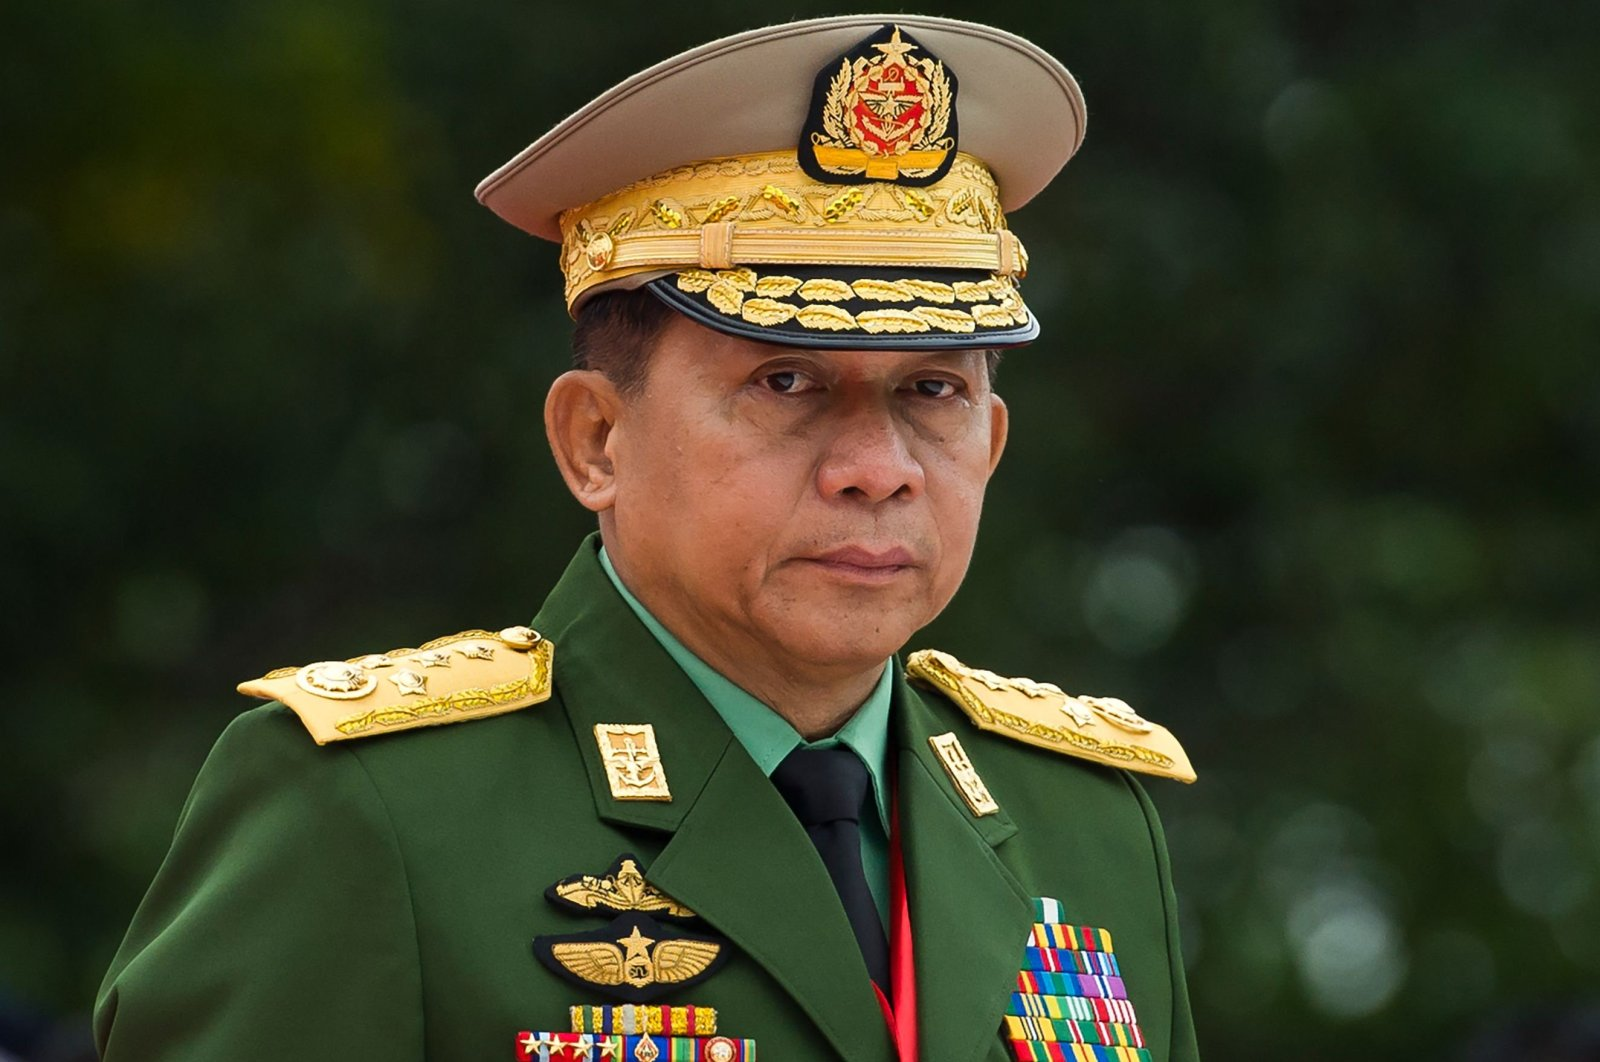 Myanmar's Senior General Min Aung Hlaing arrives for a ceremony to mark the 71st anniversary of Martyrs' Day in Yangon, Myanmar, July 19, 2018. (AFP Photo)